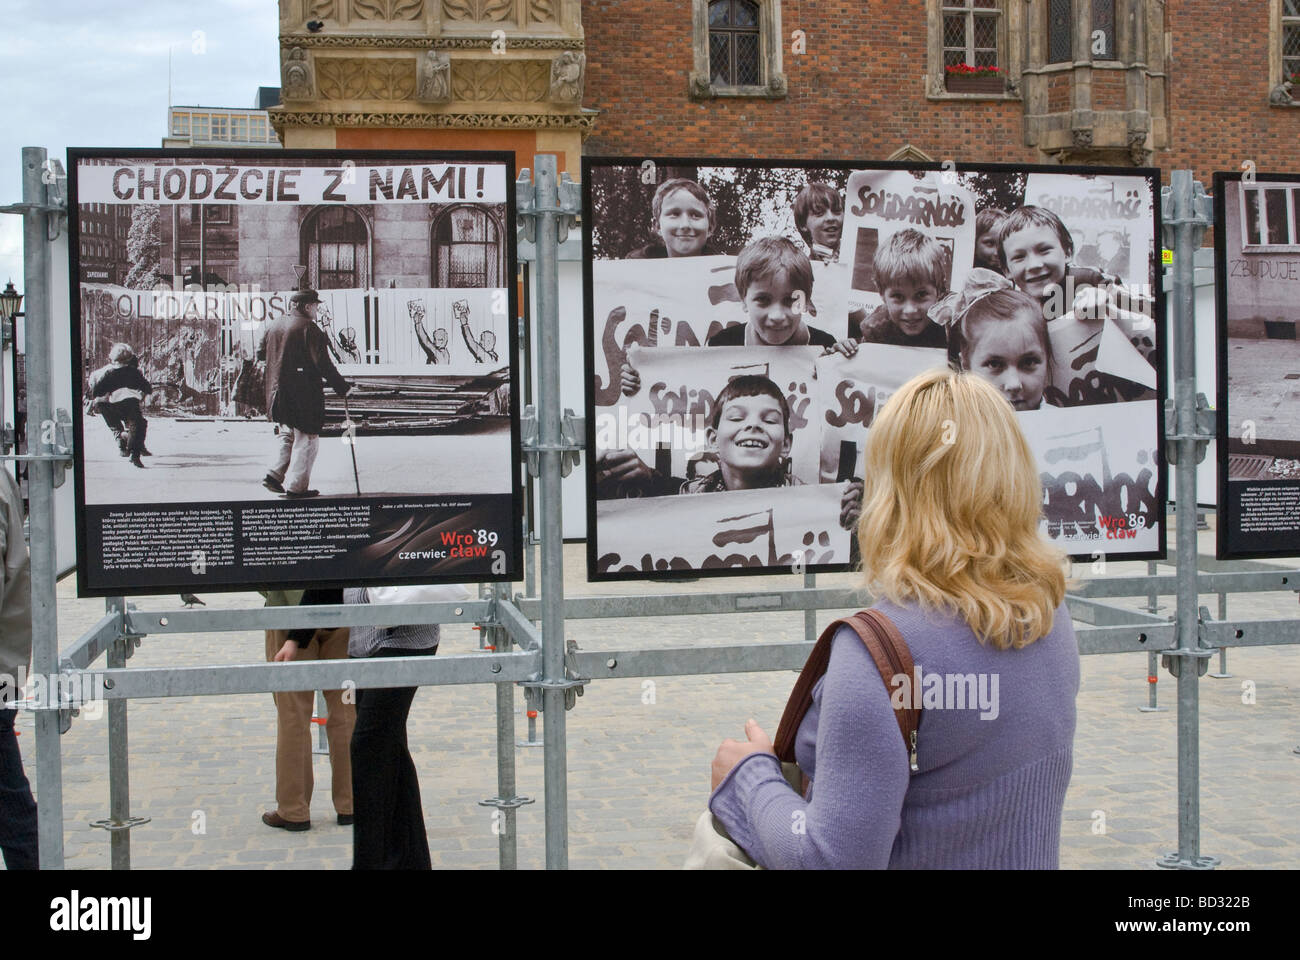 COME WITH US and SOLIDARITY signs in historic photos Wrocław June 1989 communism collapse, displayed June 2009 in - Stock Image